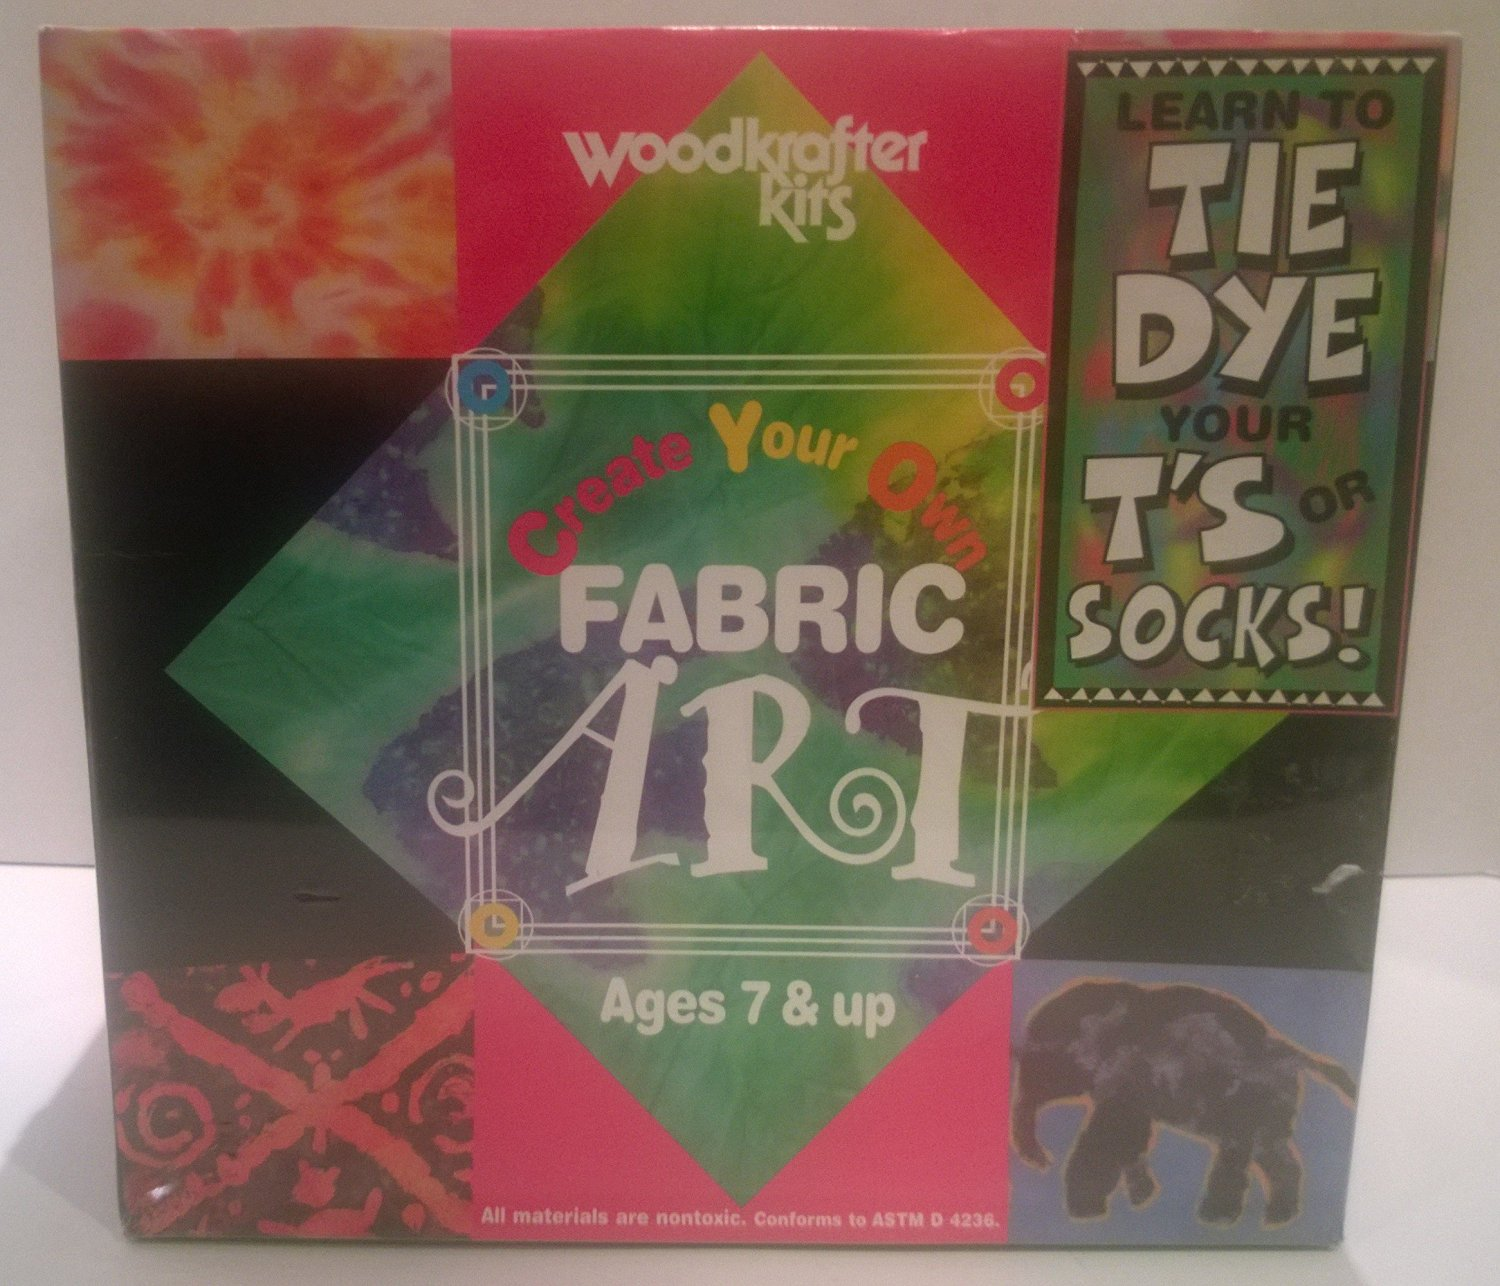 Woodkrafter Kits Creat Your Own Fabric Art